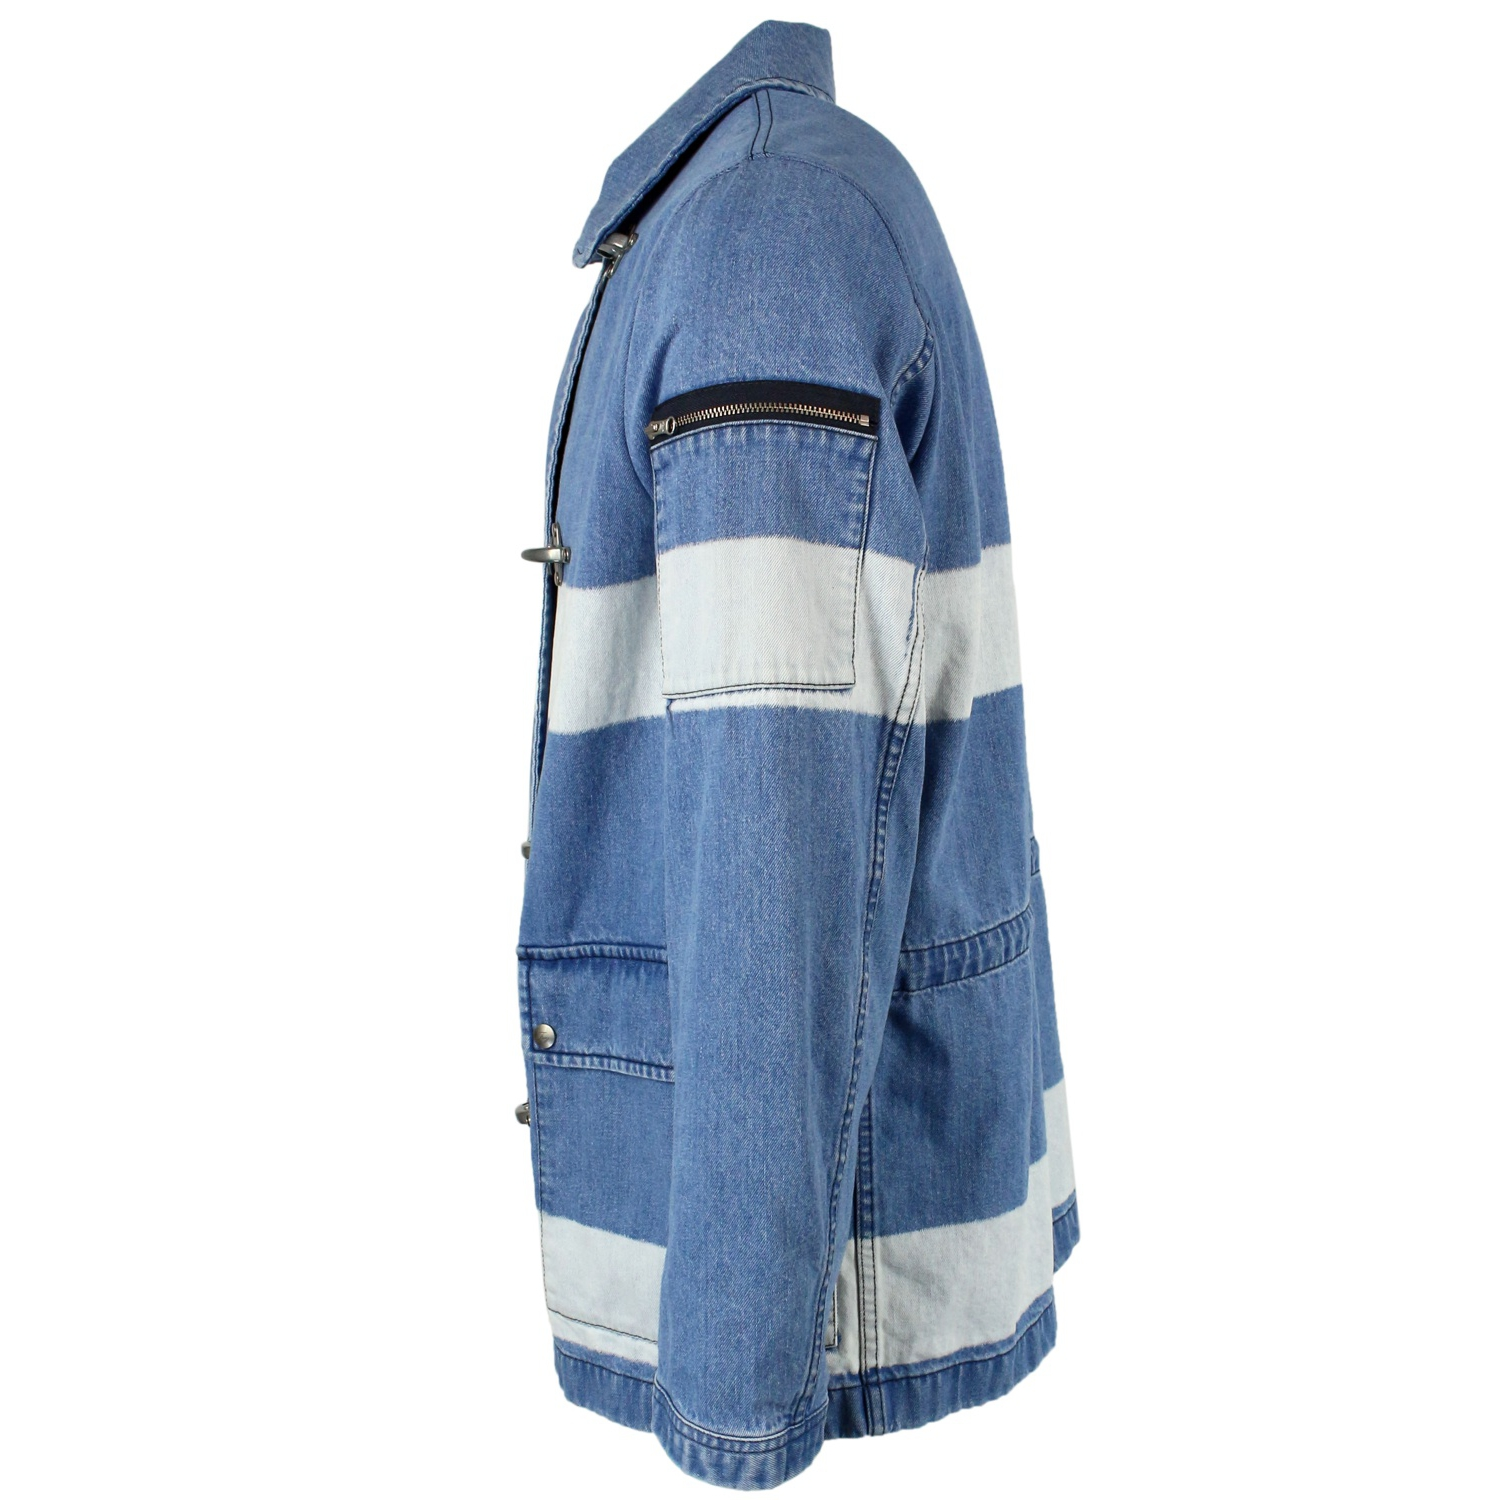 official photos 7b02e a4caf Cotton jacket with 4 hooks